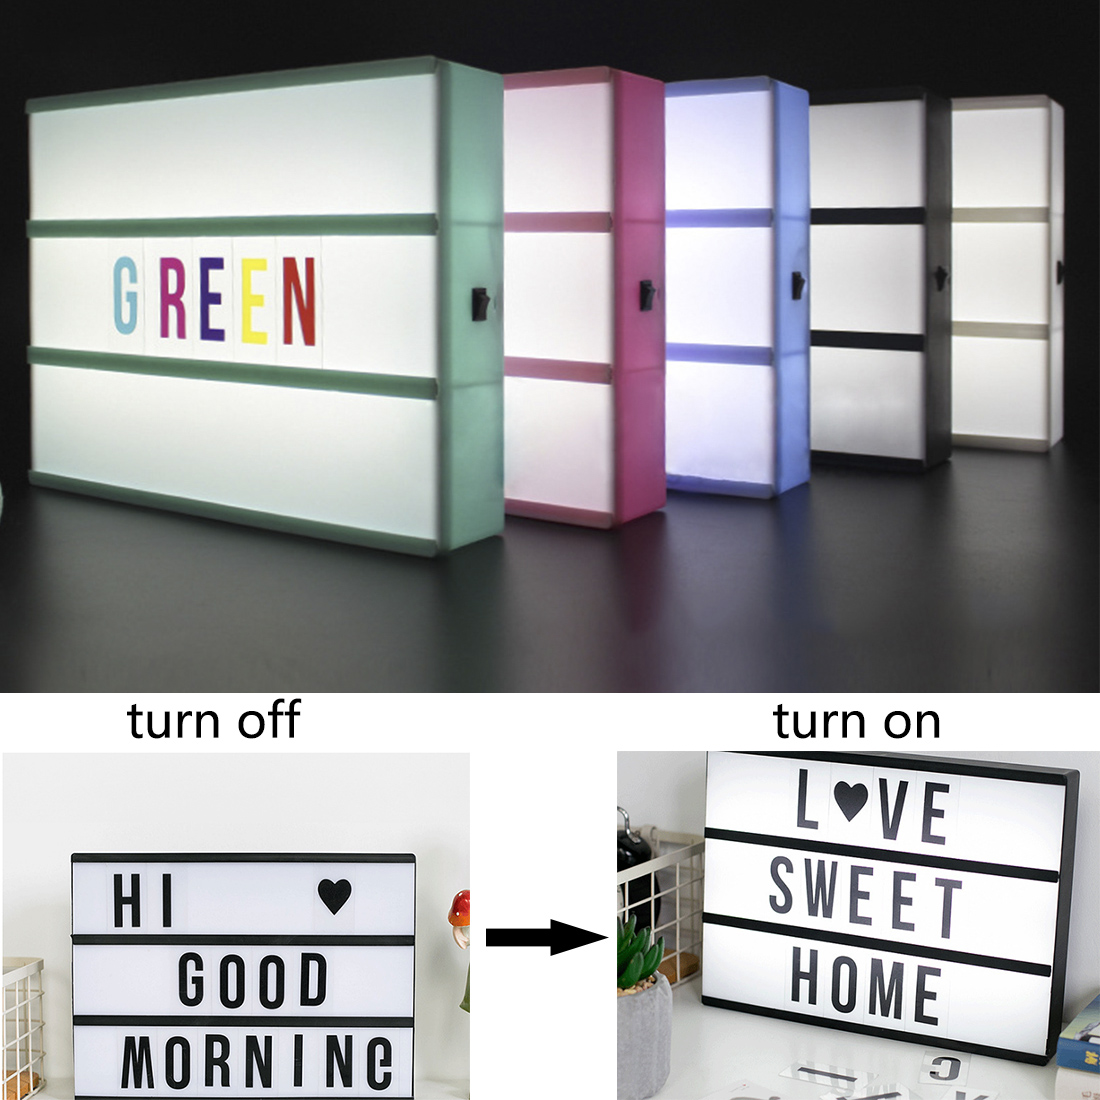 A4 A6 Size LED Combination Night Light Box Lamp AA Battery DIY Letters Symbol Cards Decoration Lamp Message Board Lightbox